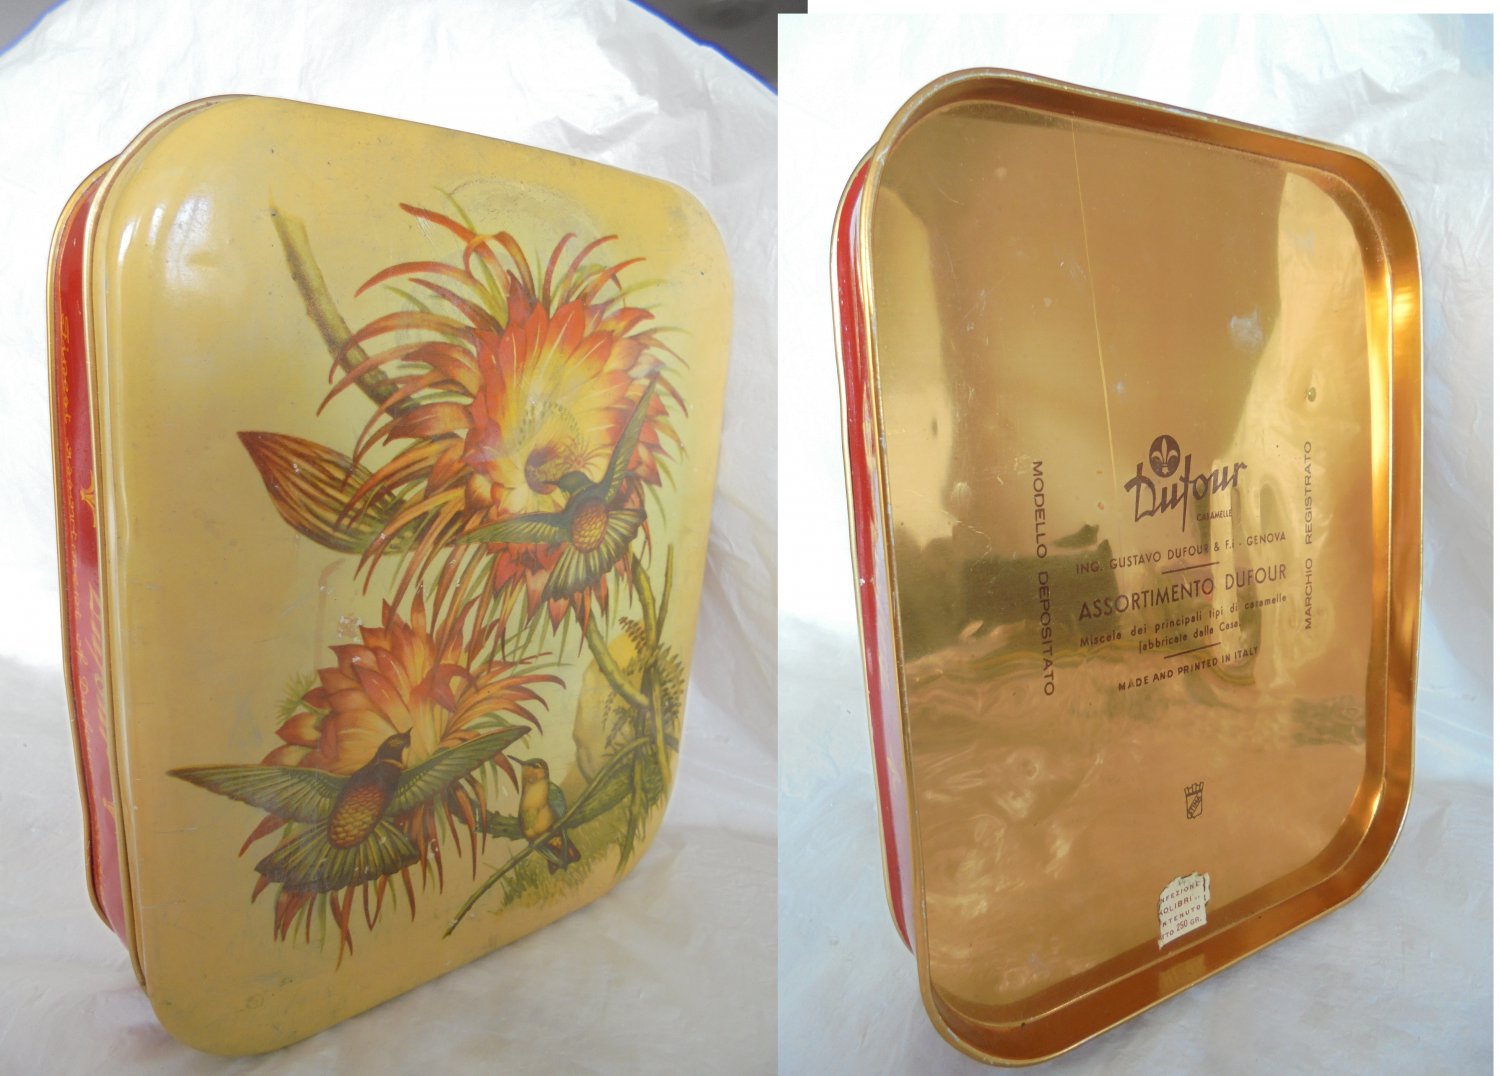 DUFOUR CARAMELLE tin candy box with flowers and birds Original 1960s